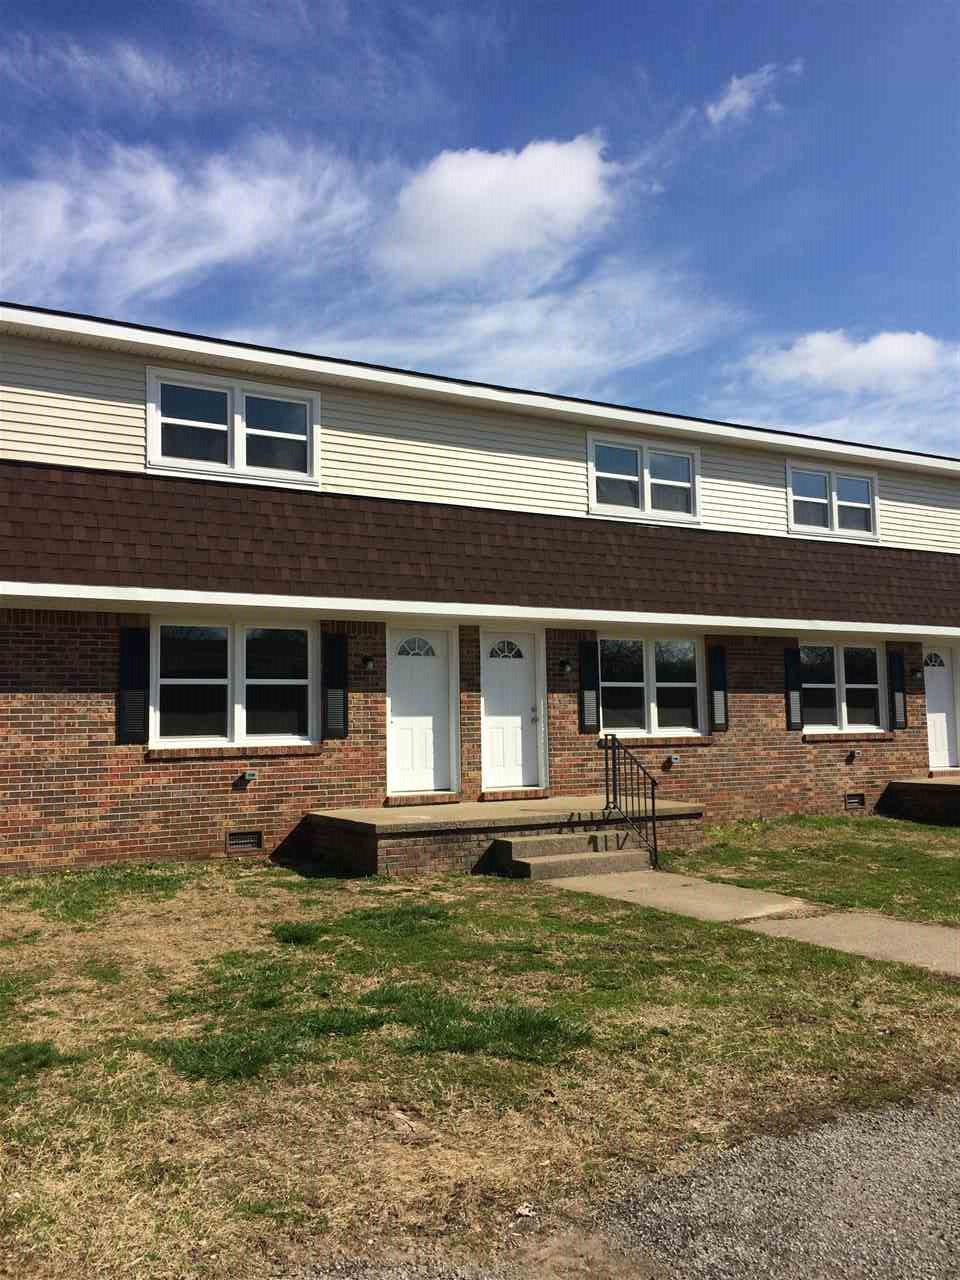 Rental Homes for Rent, ListingId:32536192, location: 216 Glenn St Paducah 42003